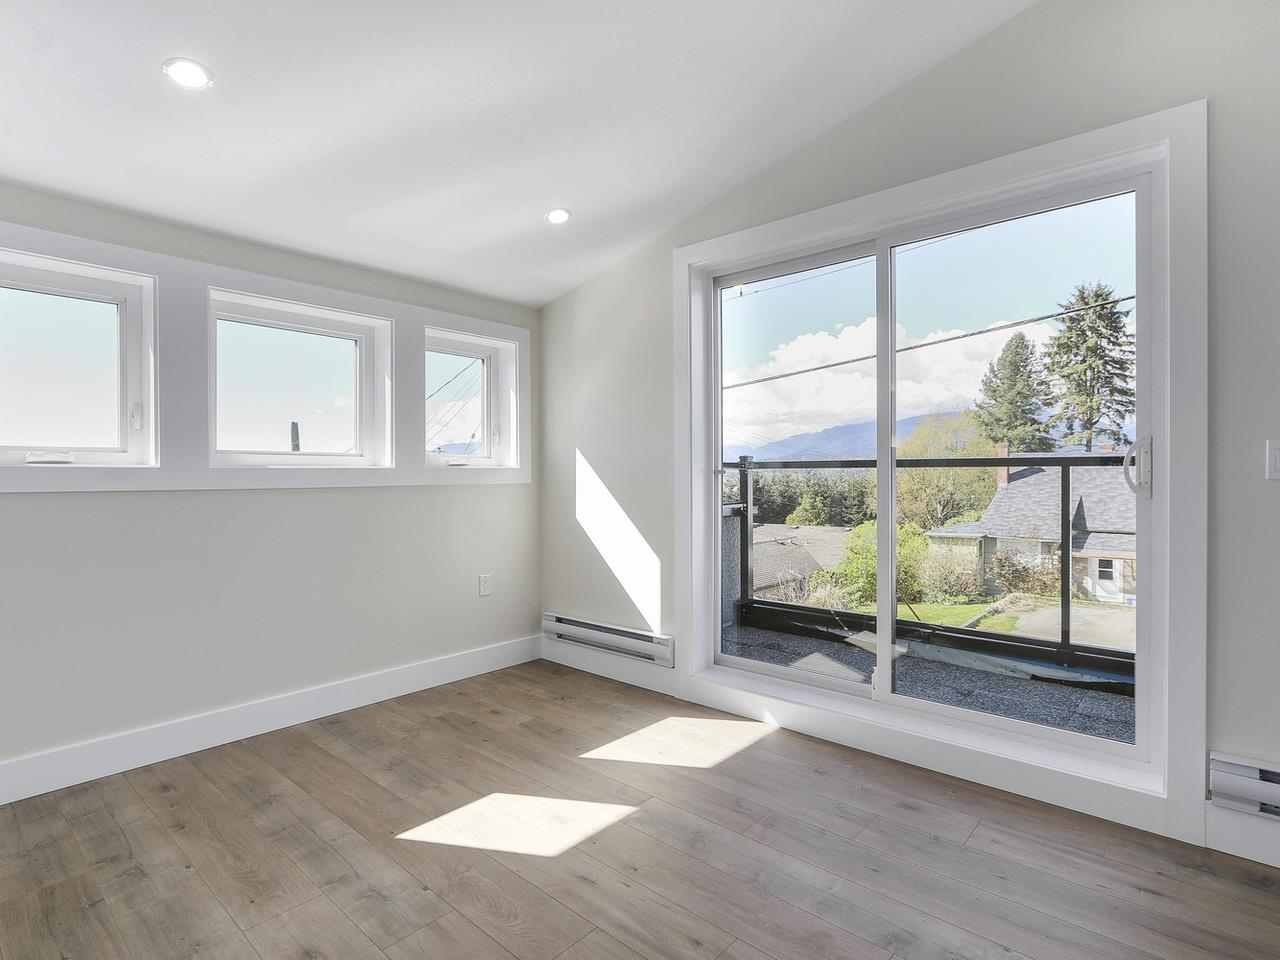 Photo 19: 3539 ETON Street in Vancouver: Hastings East House for sale (Vancouver East)  : MLS® # R2159493